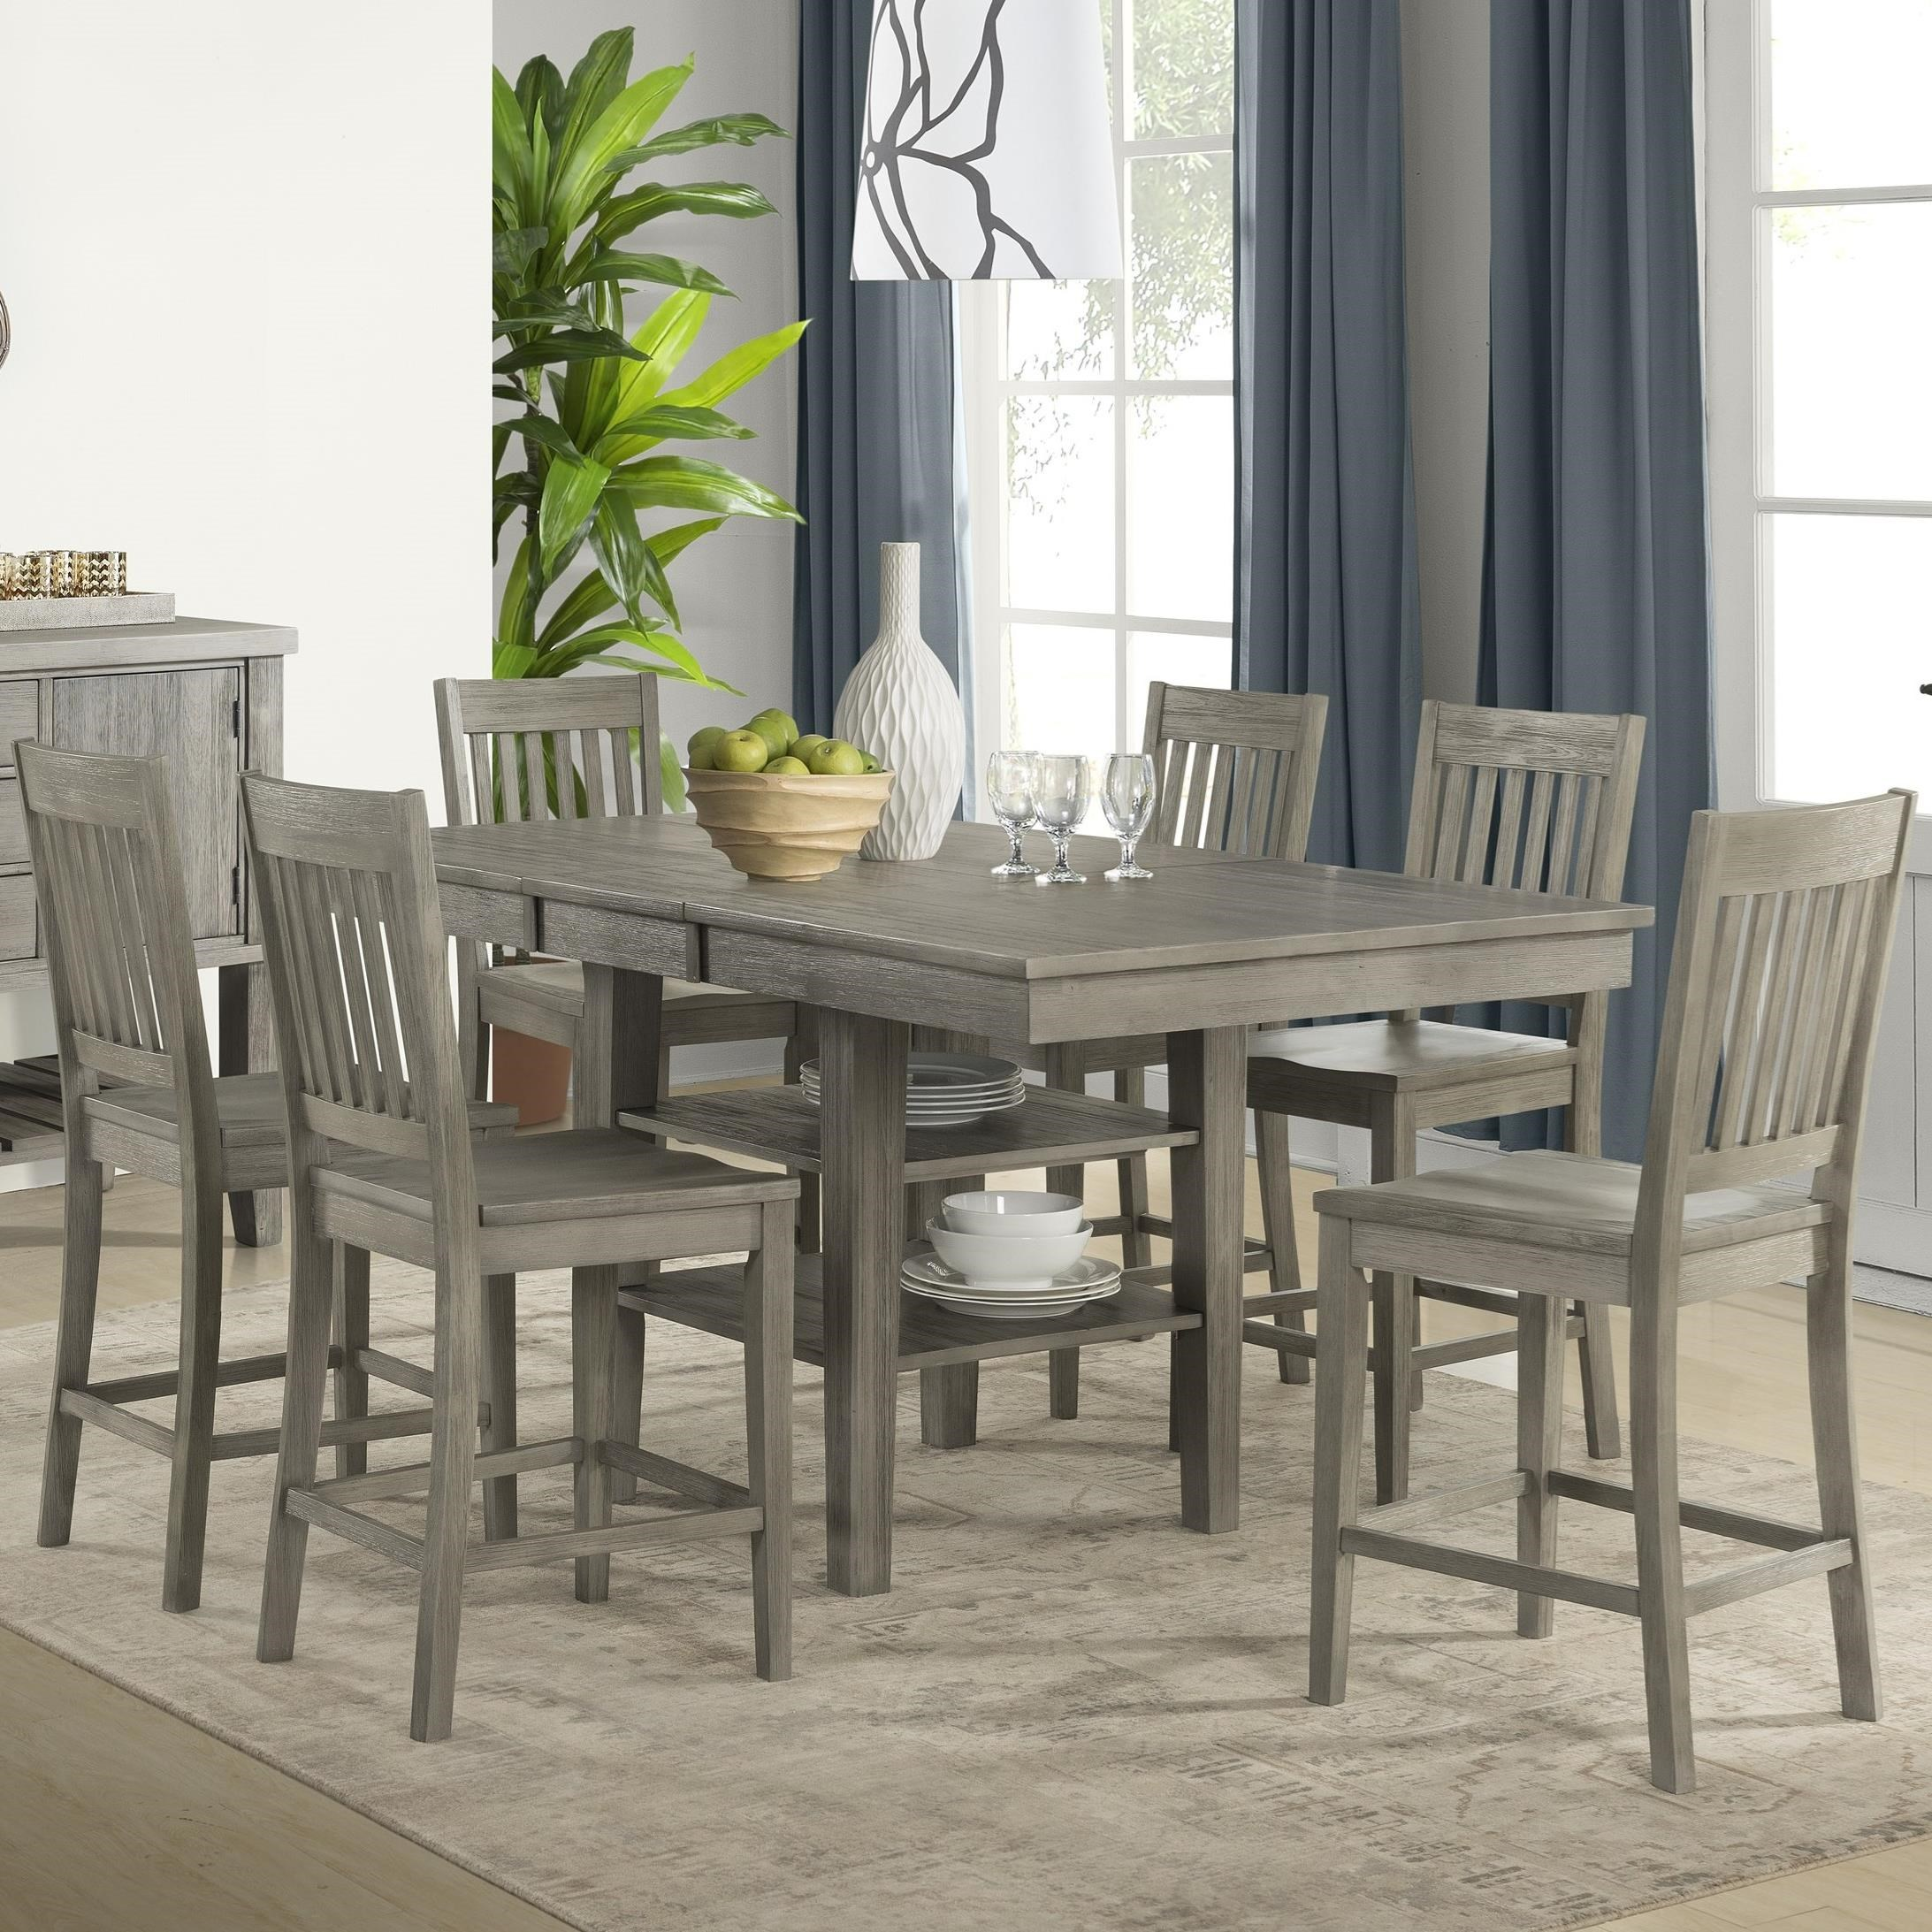 Huron Transitional Pub Table and Chair Set by AAmerica at Wilson's Furniture